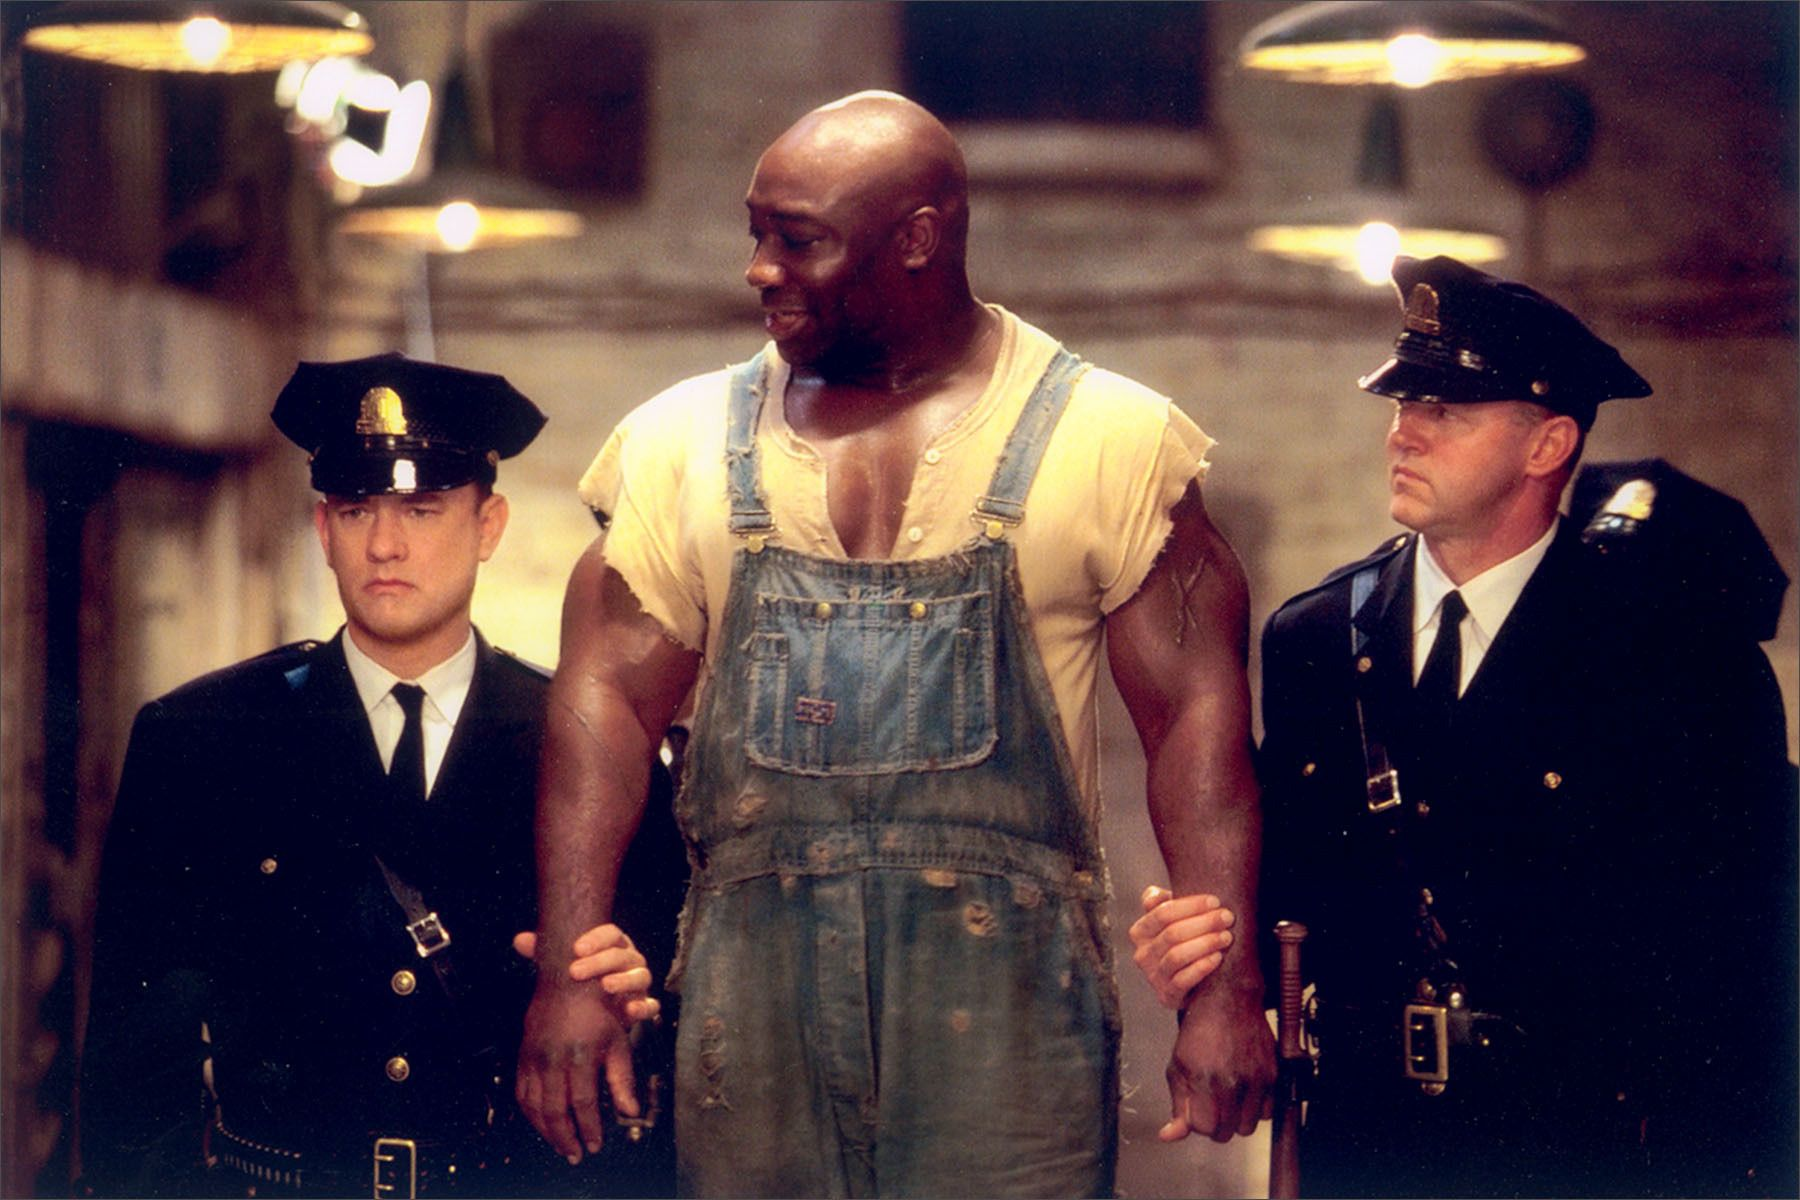 The Green Mile - Tom Hanks, Michael Clarke Duncan & David Morse